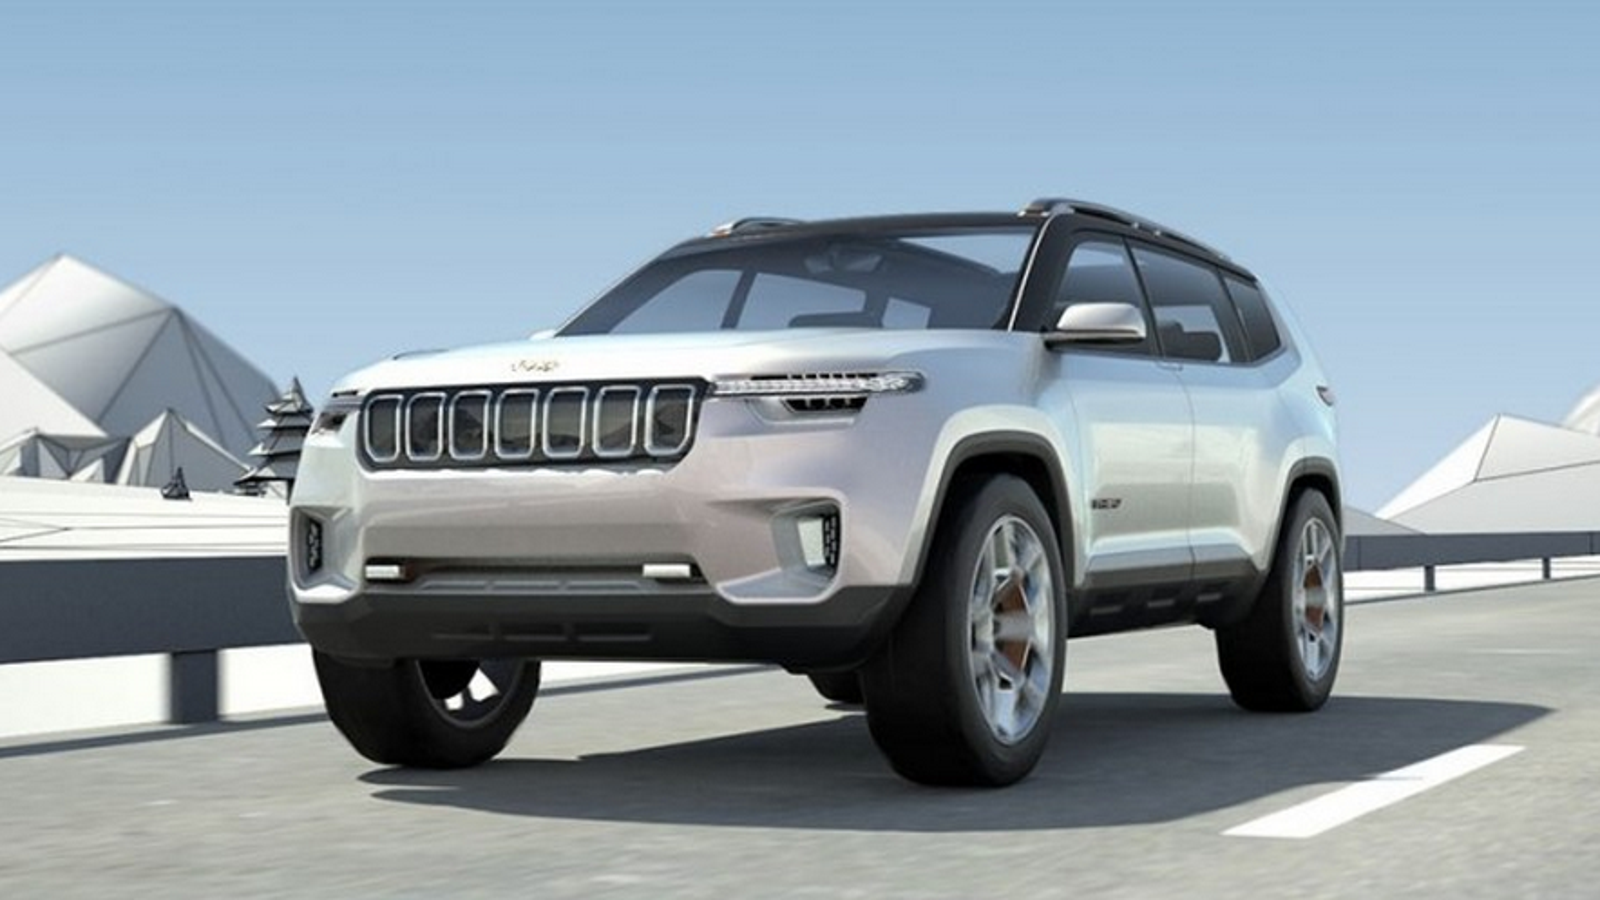 Jeep Cherokee 3Rd Row >> The Jeep Yuntu Concept Could Be The Three Row Jeep The World Yearns For